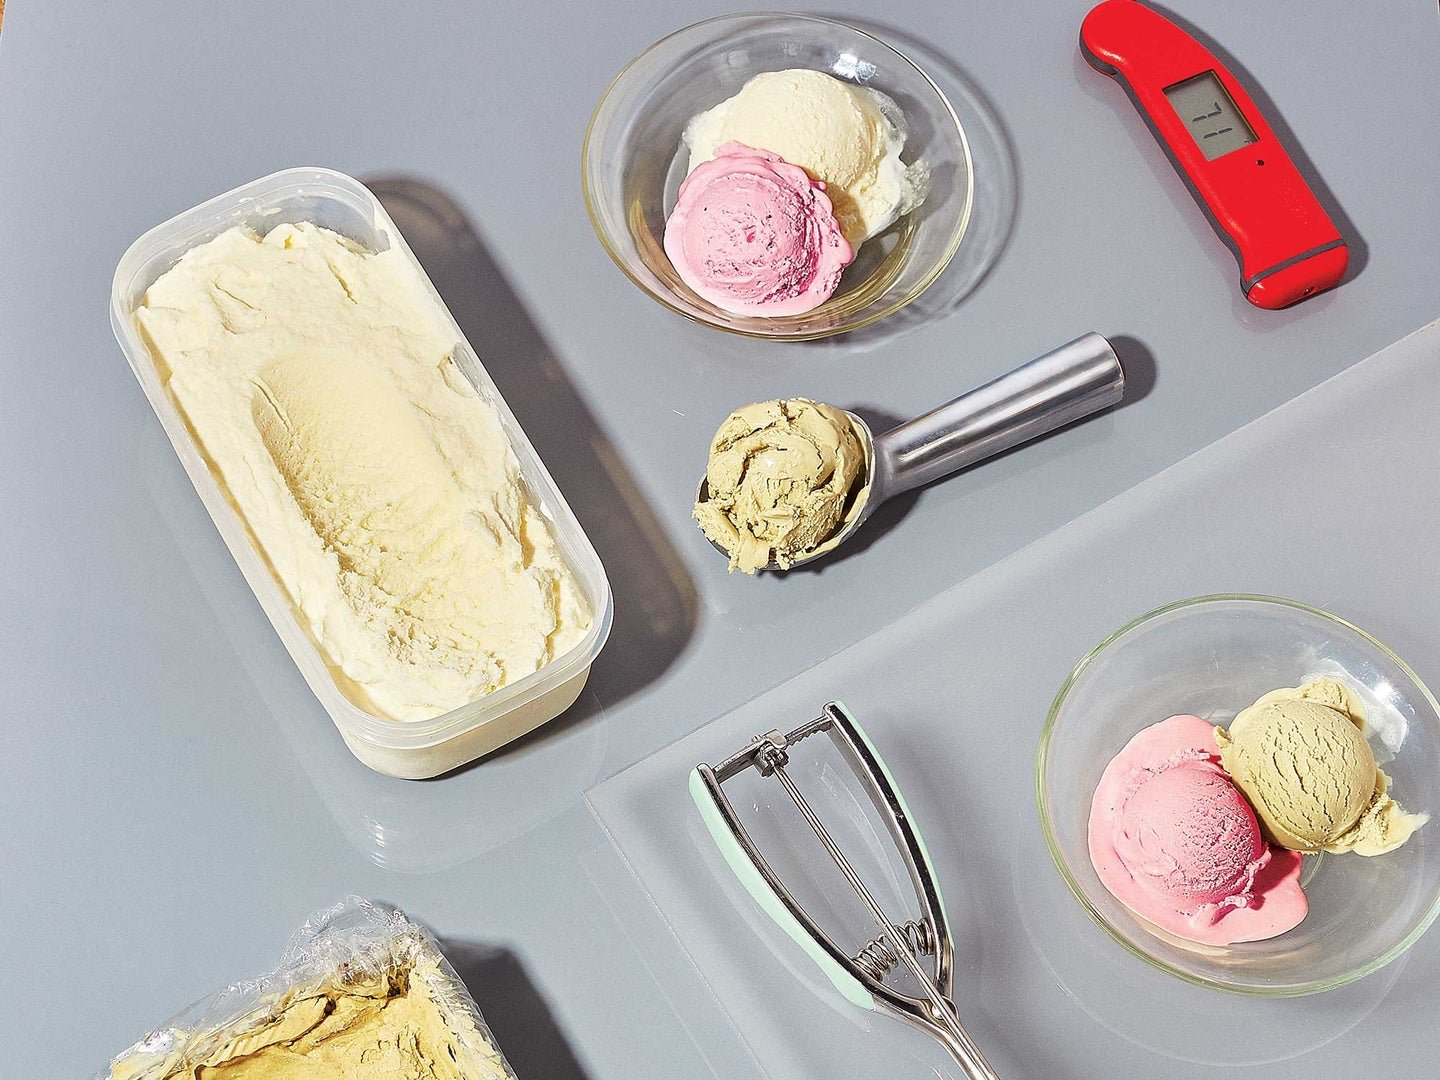 The Best Ice Cream Maker, Scoop, and Other Tools for Your Home Sundae Bar